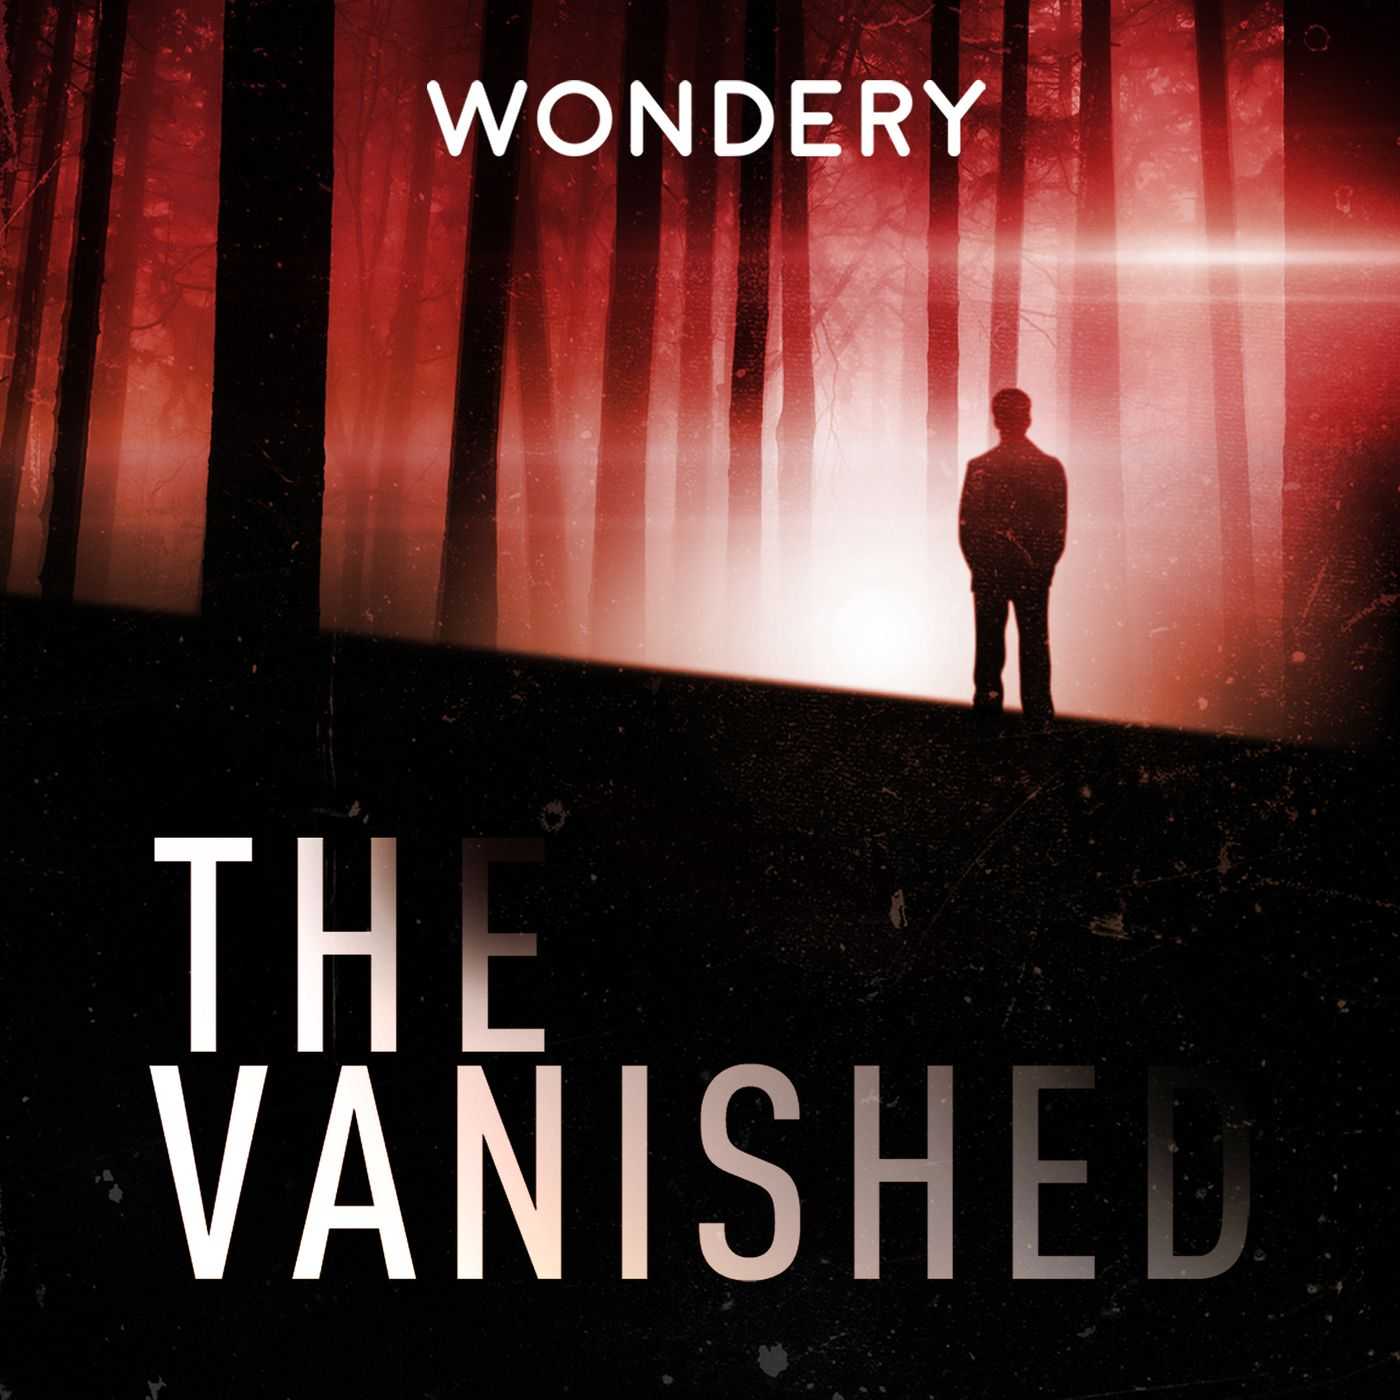 Introducing The Vanished